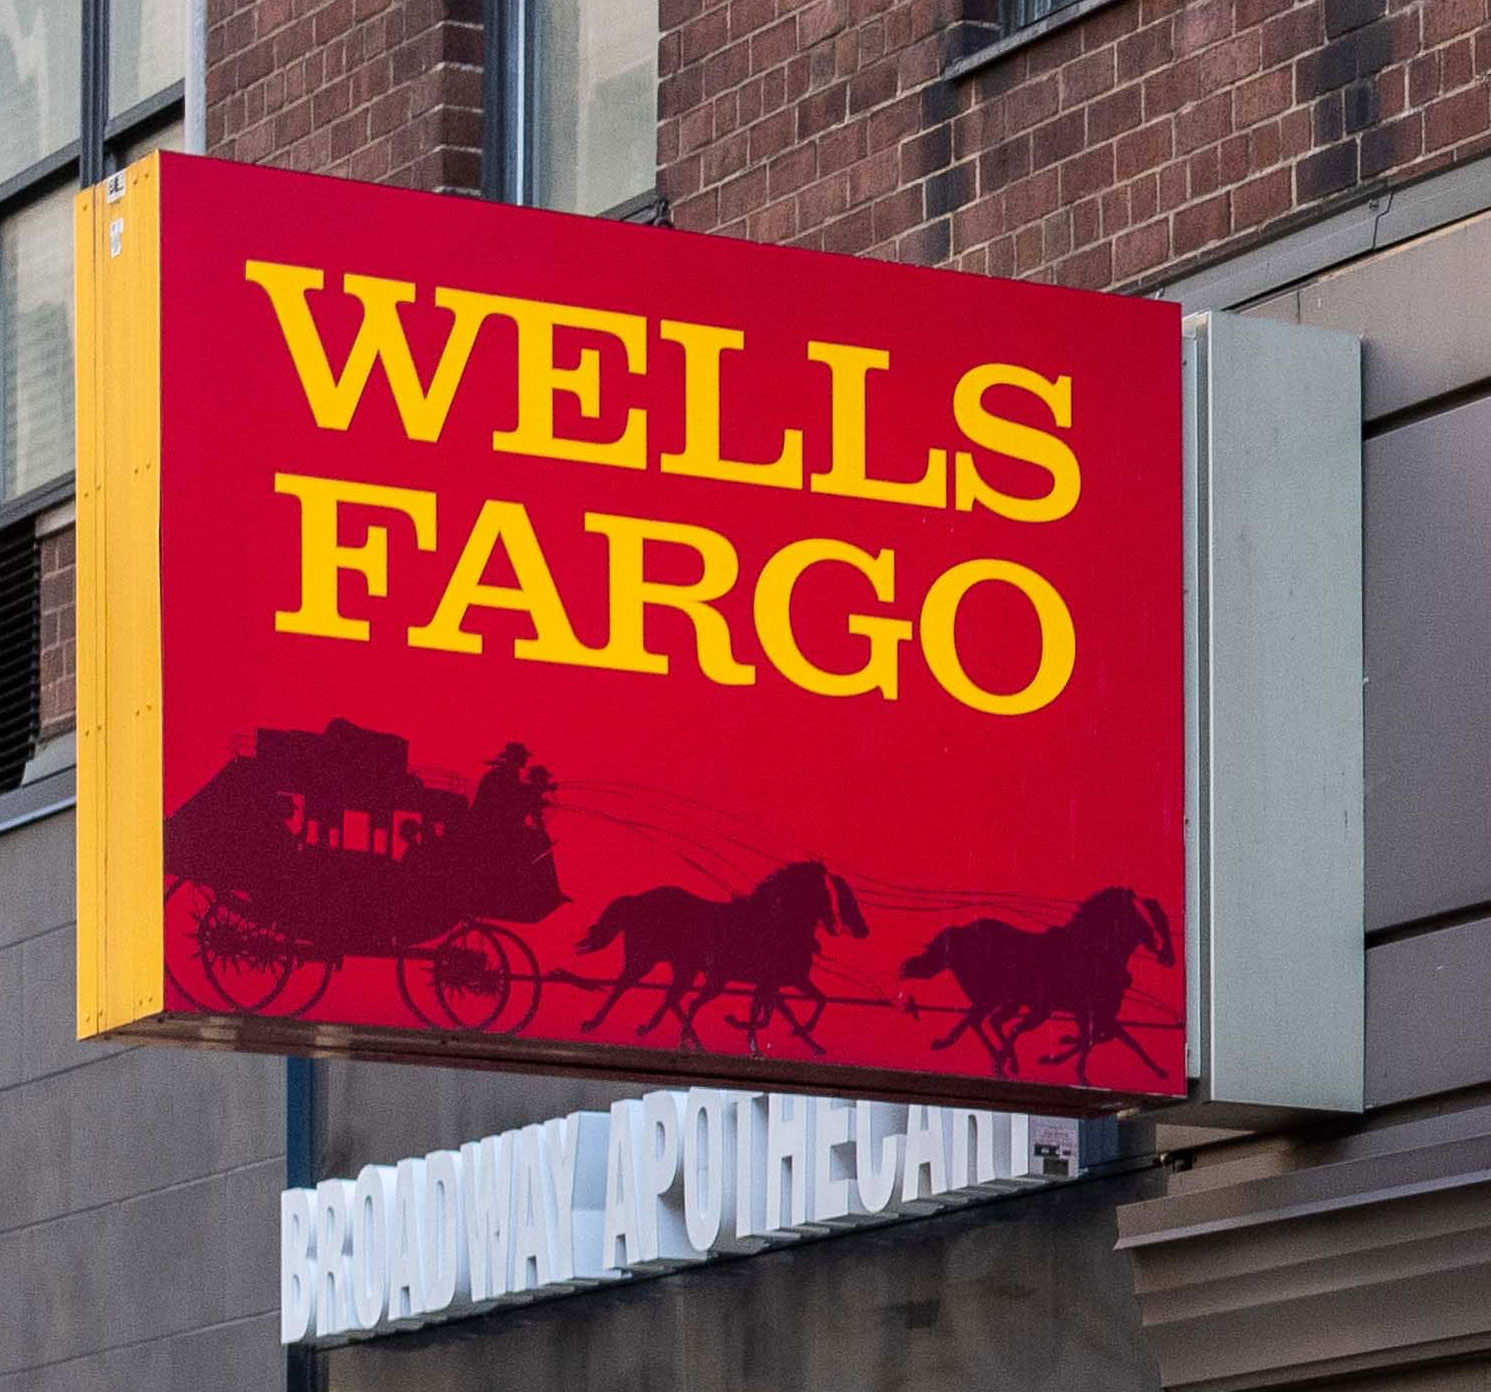 The Ultimate Guide To The Wells Fargo Hiring Process 2021 Prepti